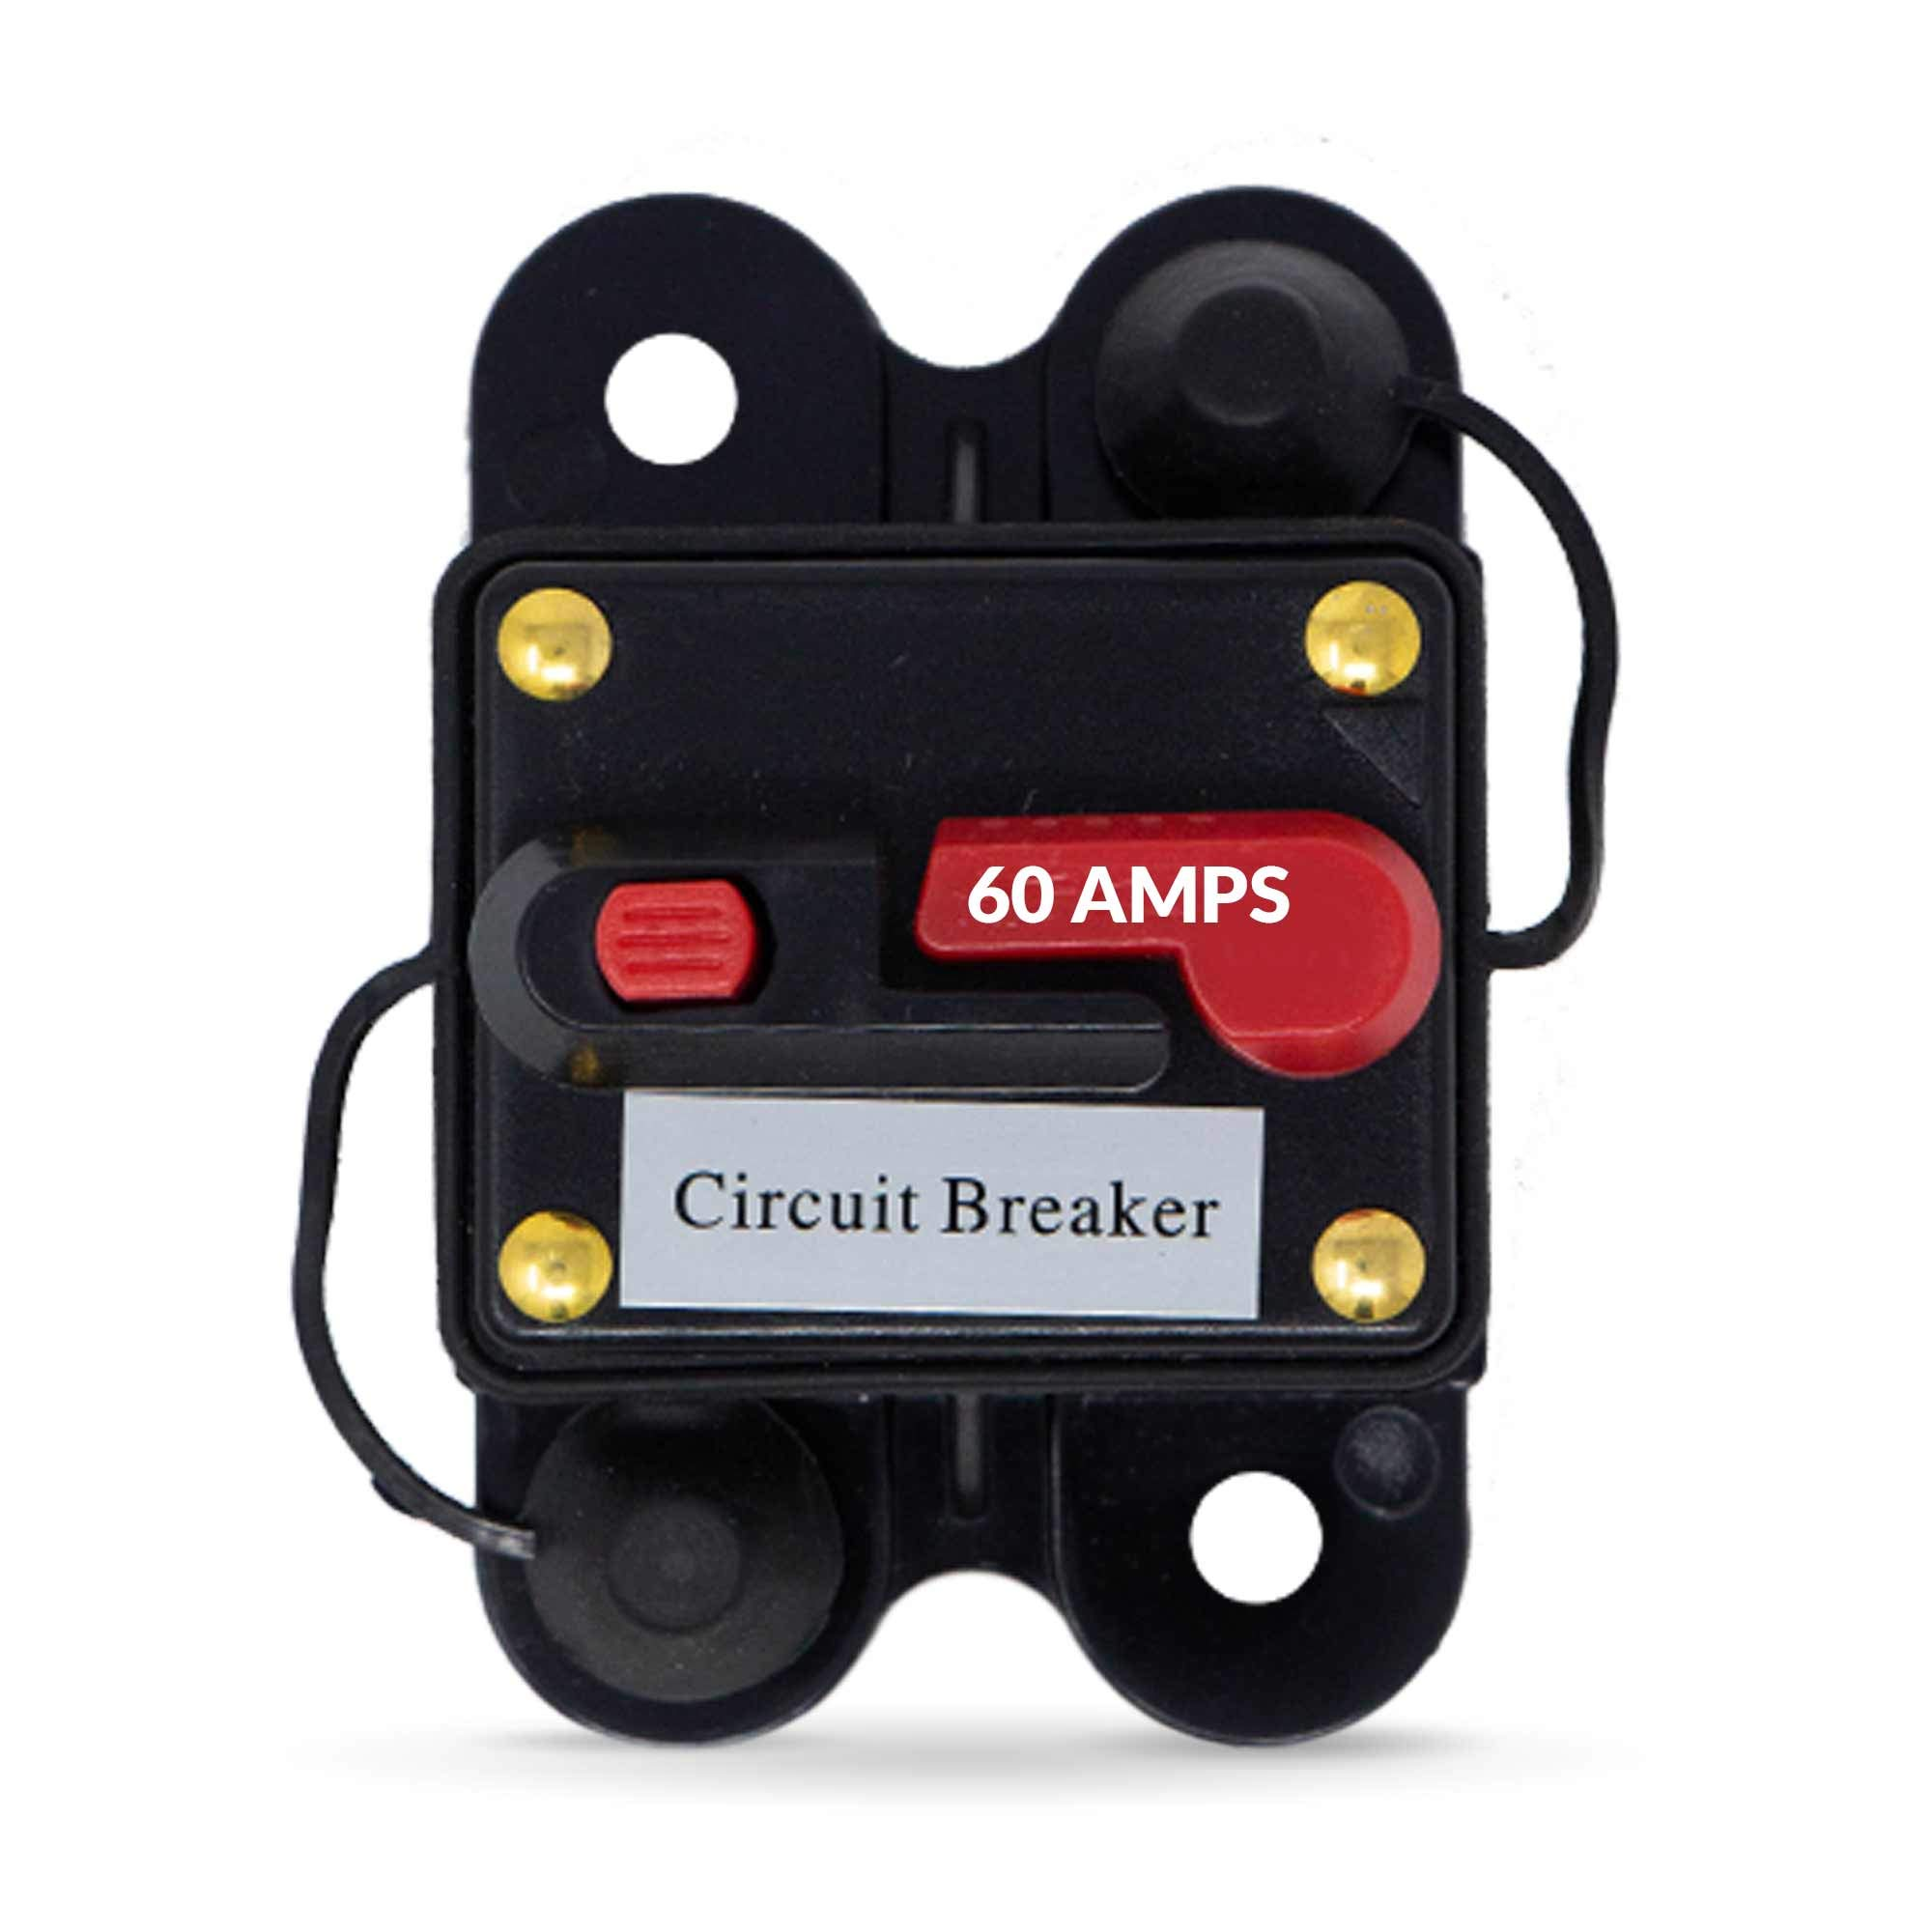 Five Oceans 60 Amp Anchor Windlass Circuit Breaker w/Manual Reset Button, 12V FO-3295 by Five Oceans